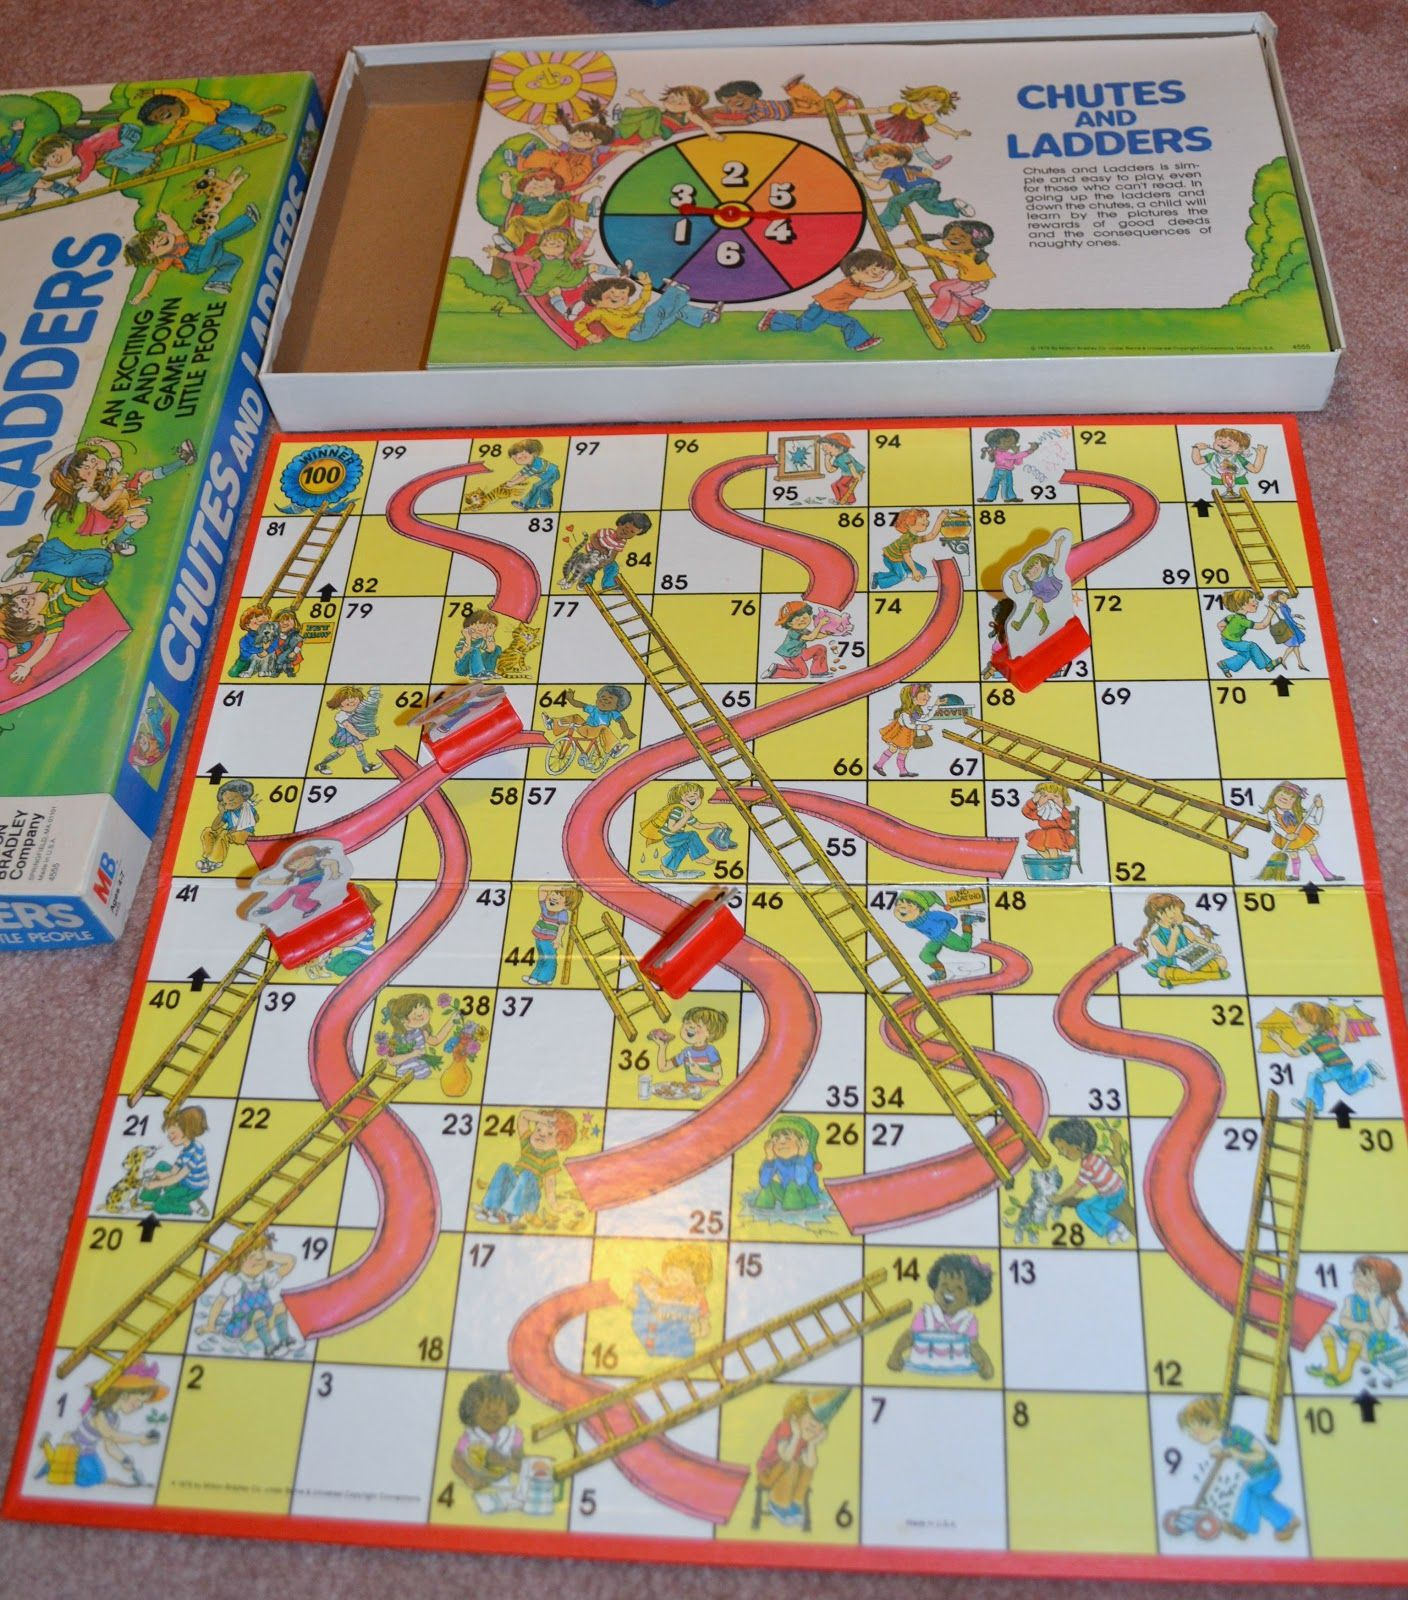 chutes and ladders board game template - chutes and ladders nostalgic for the 80 39 s 90 39 s